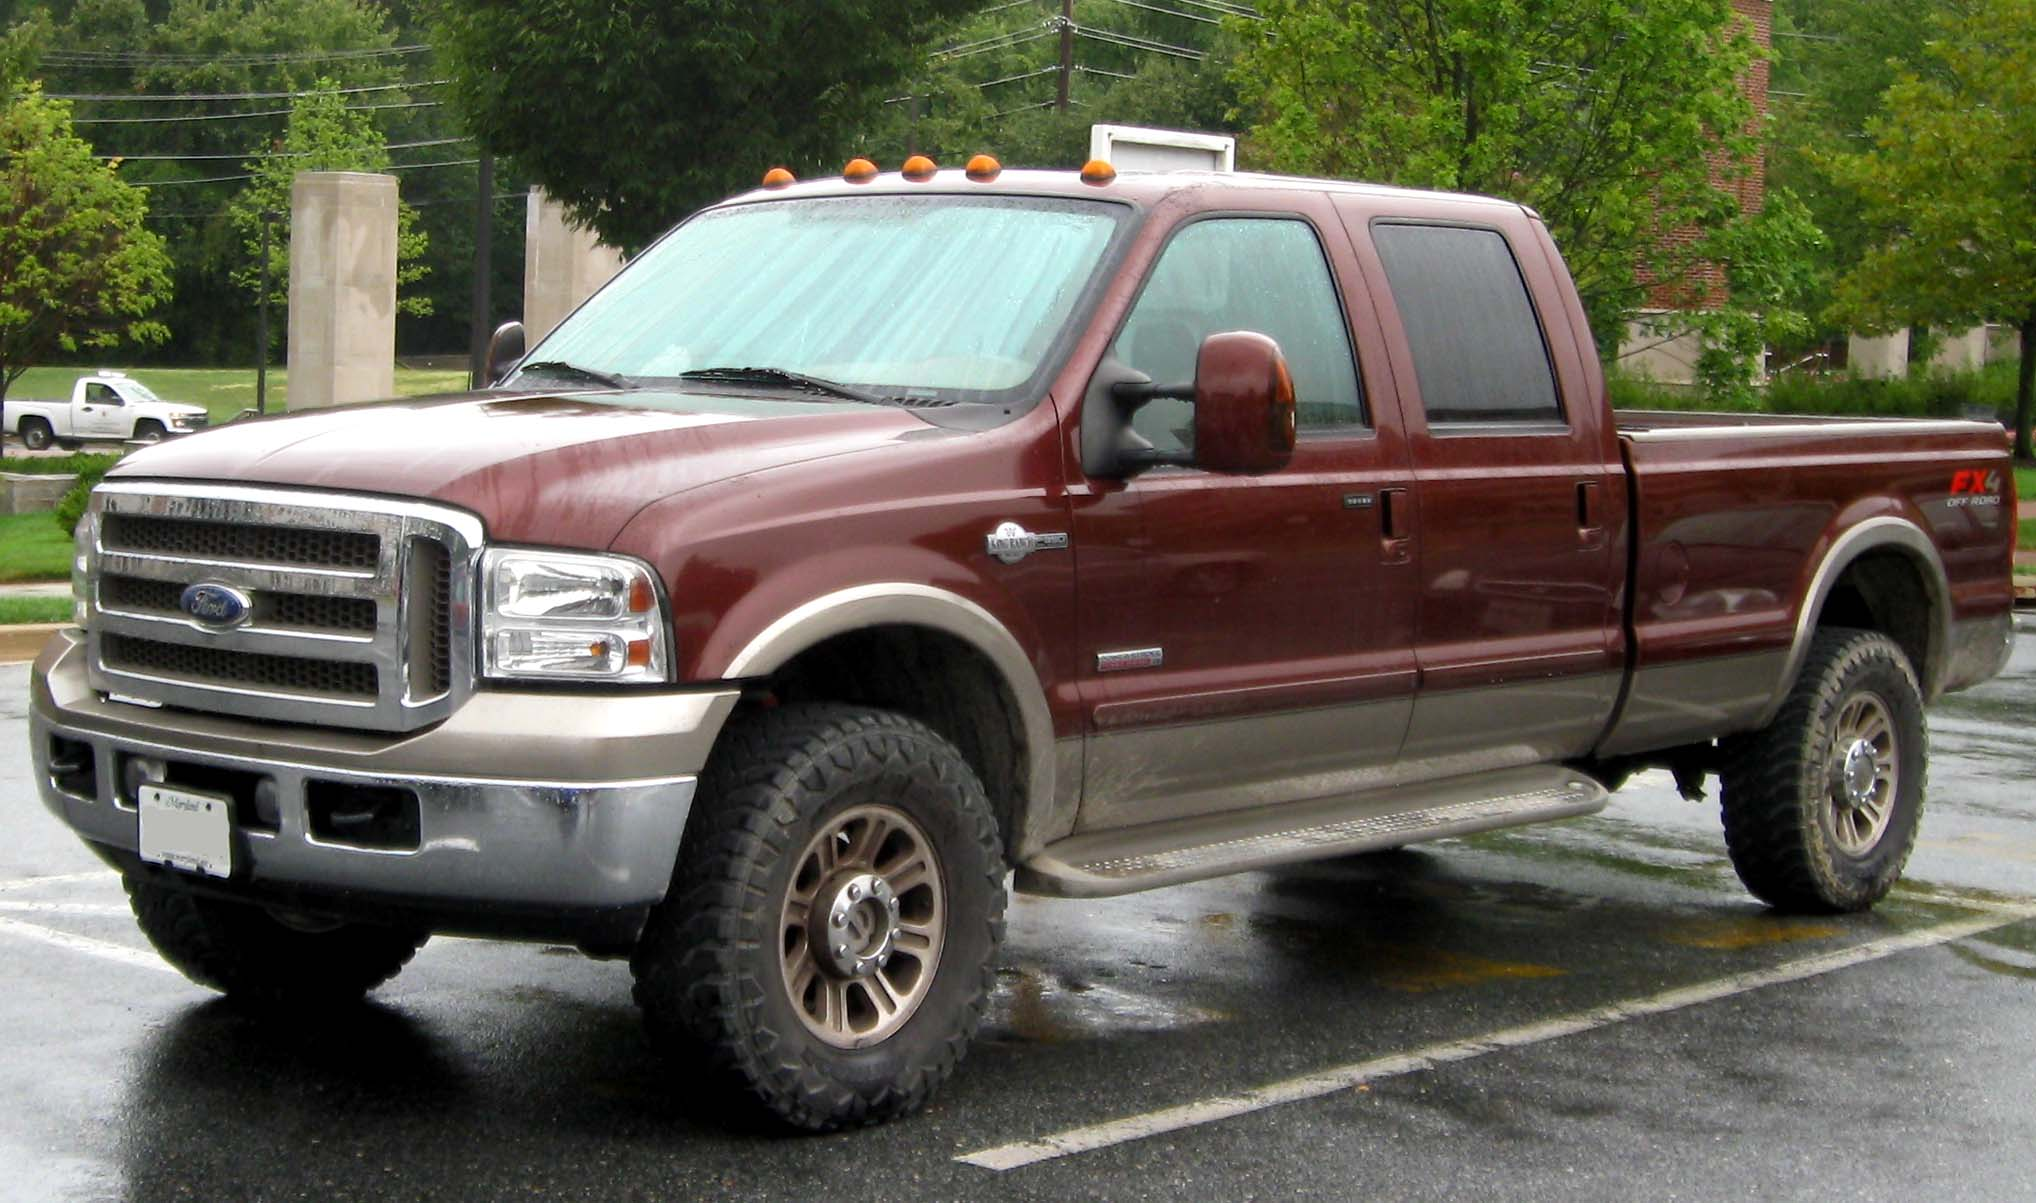 Ford F-350 Super Duty 2002 #2